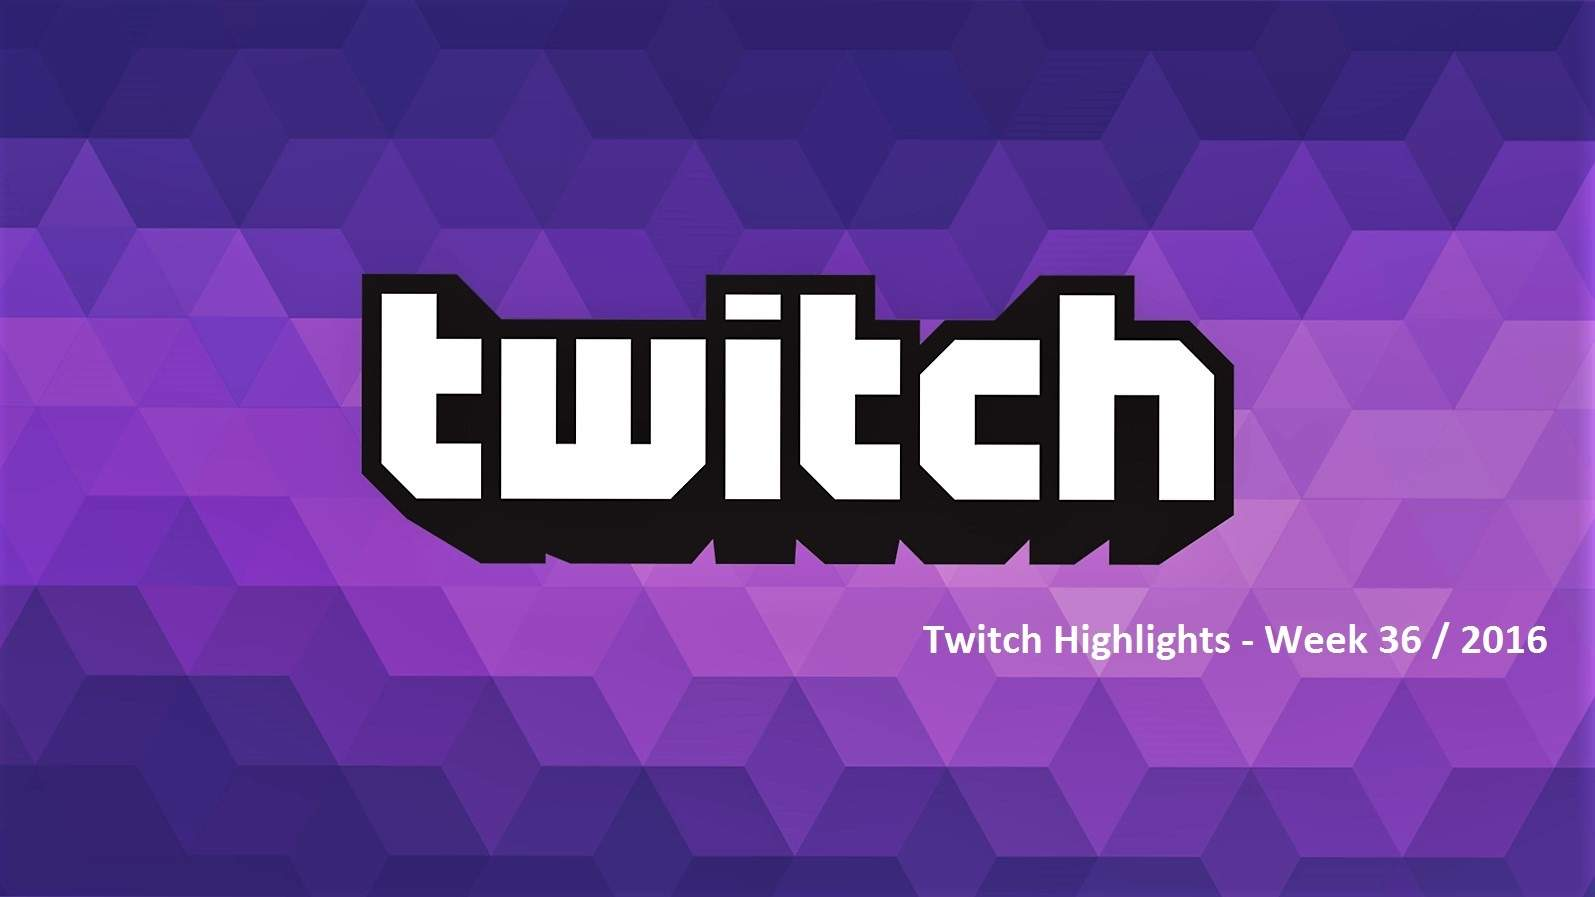 Twitch highlights – Week 36